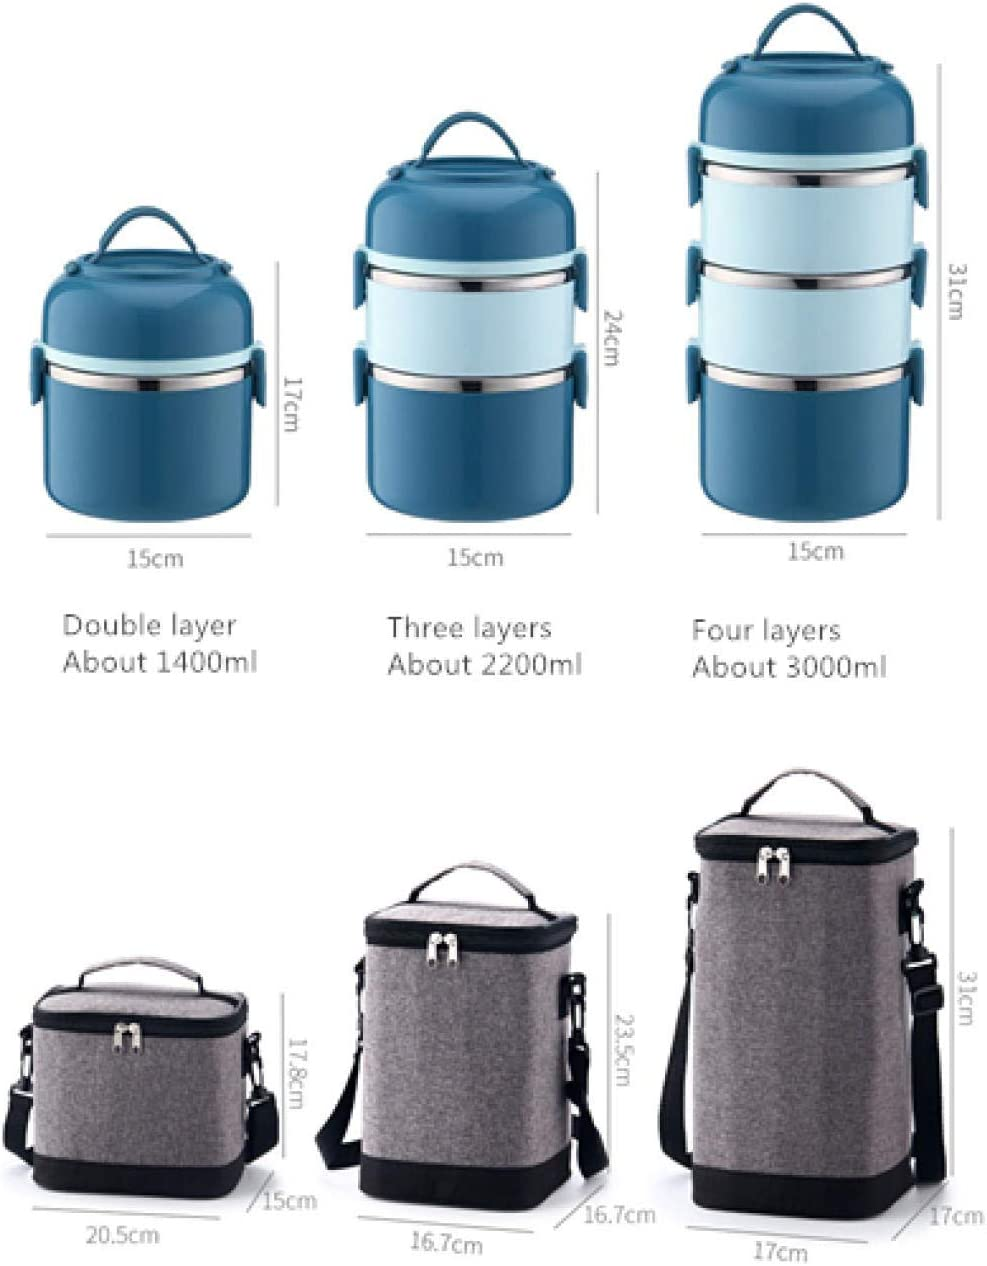 for Office School and Home Use Lunch Box Insulated//bento Box Lunch Box Includes Lunch Box 1 Pieces /& Cutlery 4 Pieces and 1 Insulated Lunch Bag Blue 2 Layers 1400ml